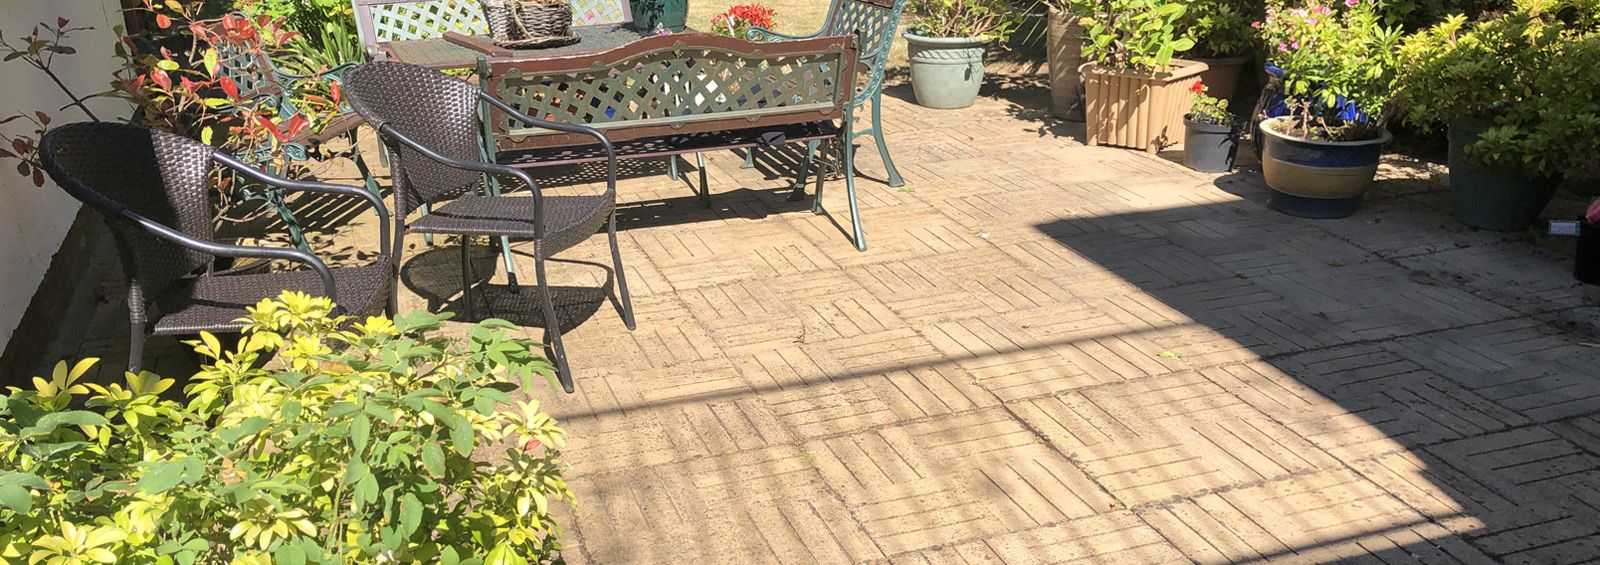 professional patio cleaner conwy